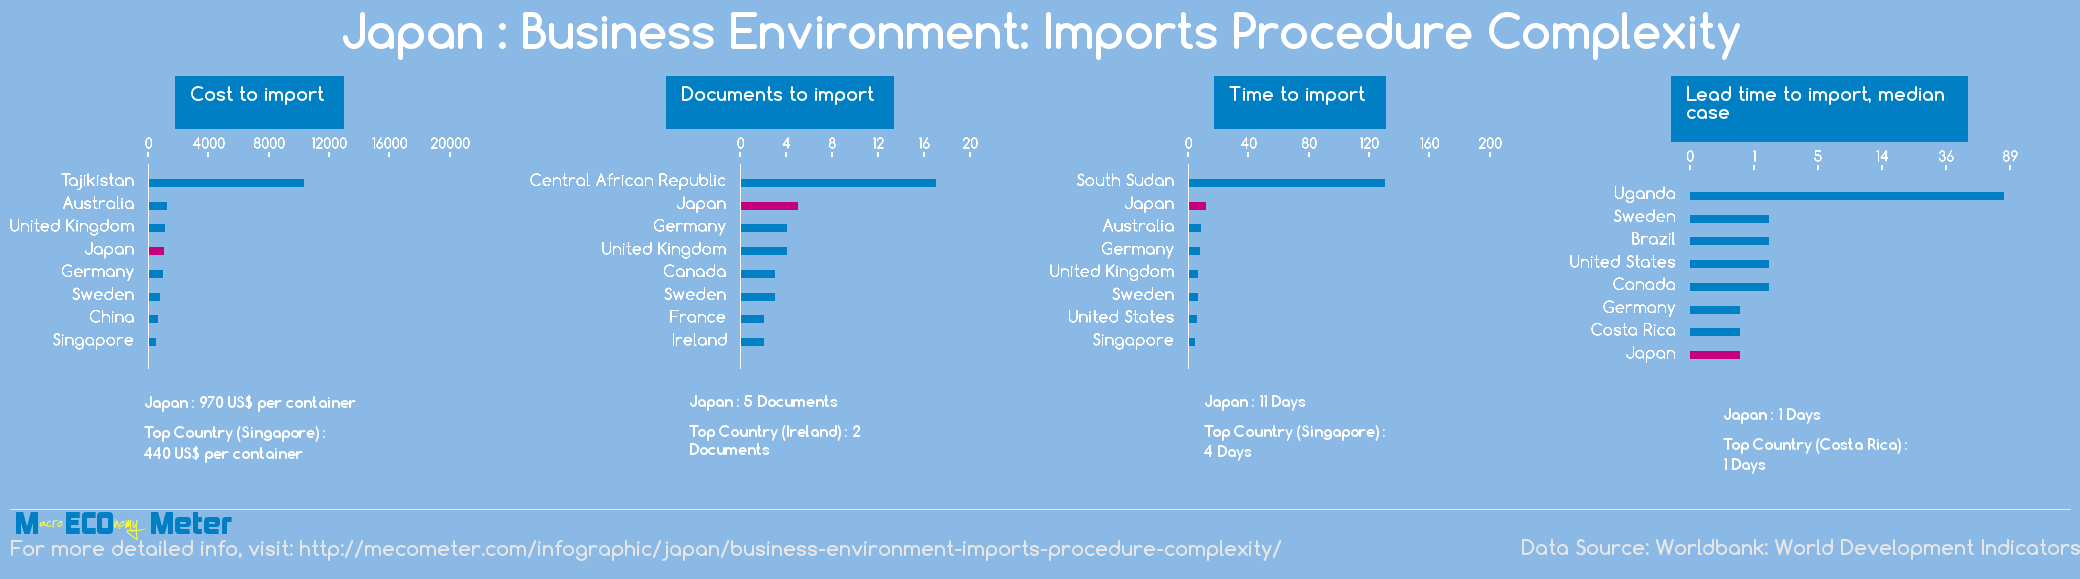 Japan : Business Environment: Imports Procedure Complexity